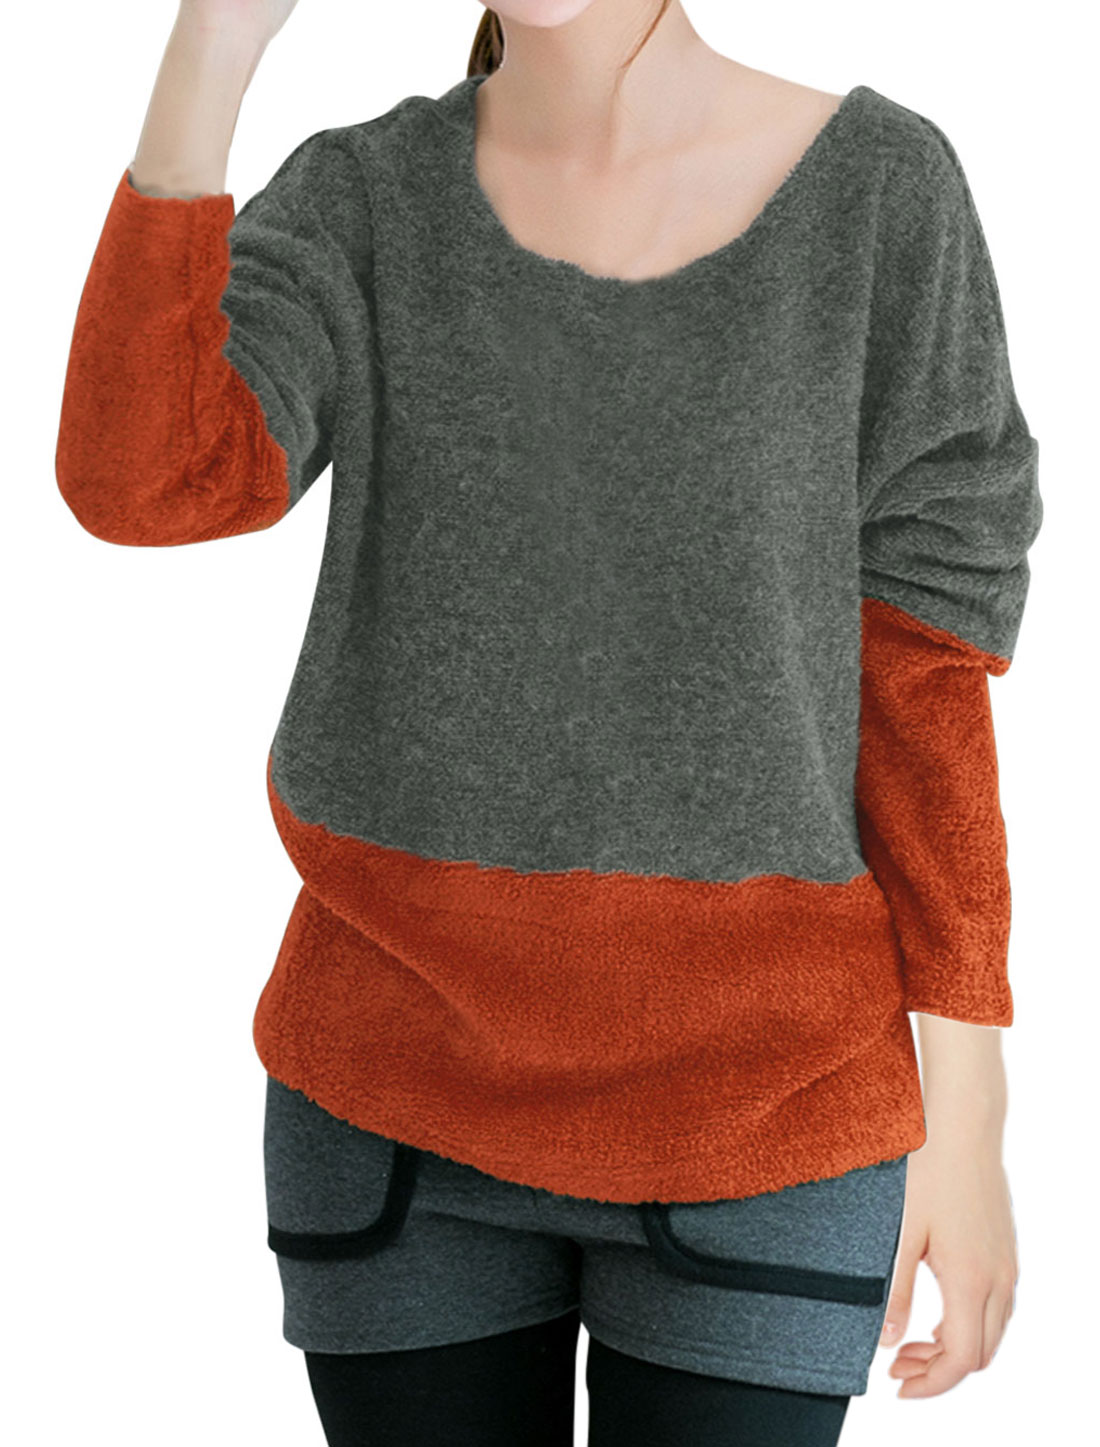 Lady Pullover Bat Sleeve Leisure Knit Shirt Orange Gray M